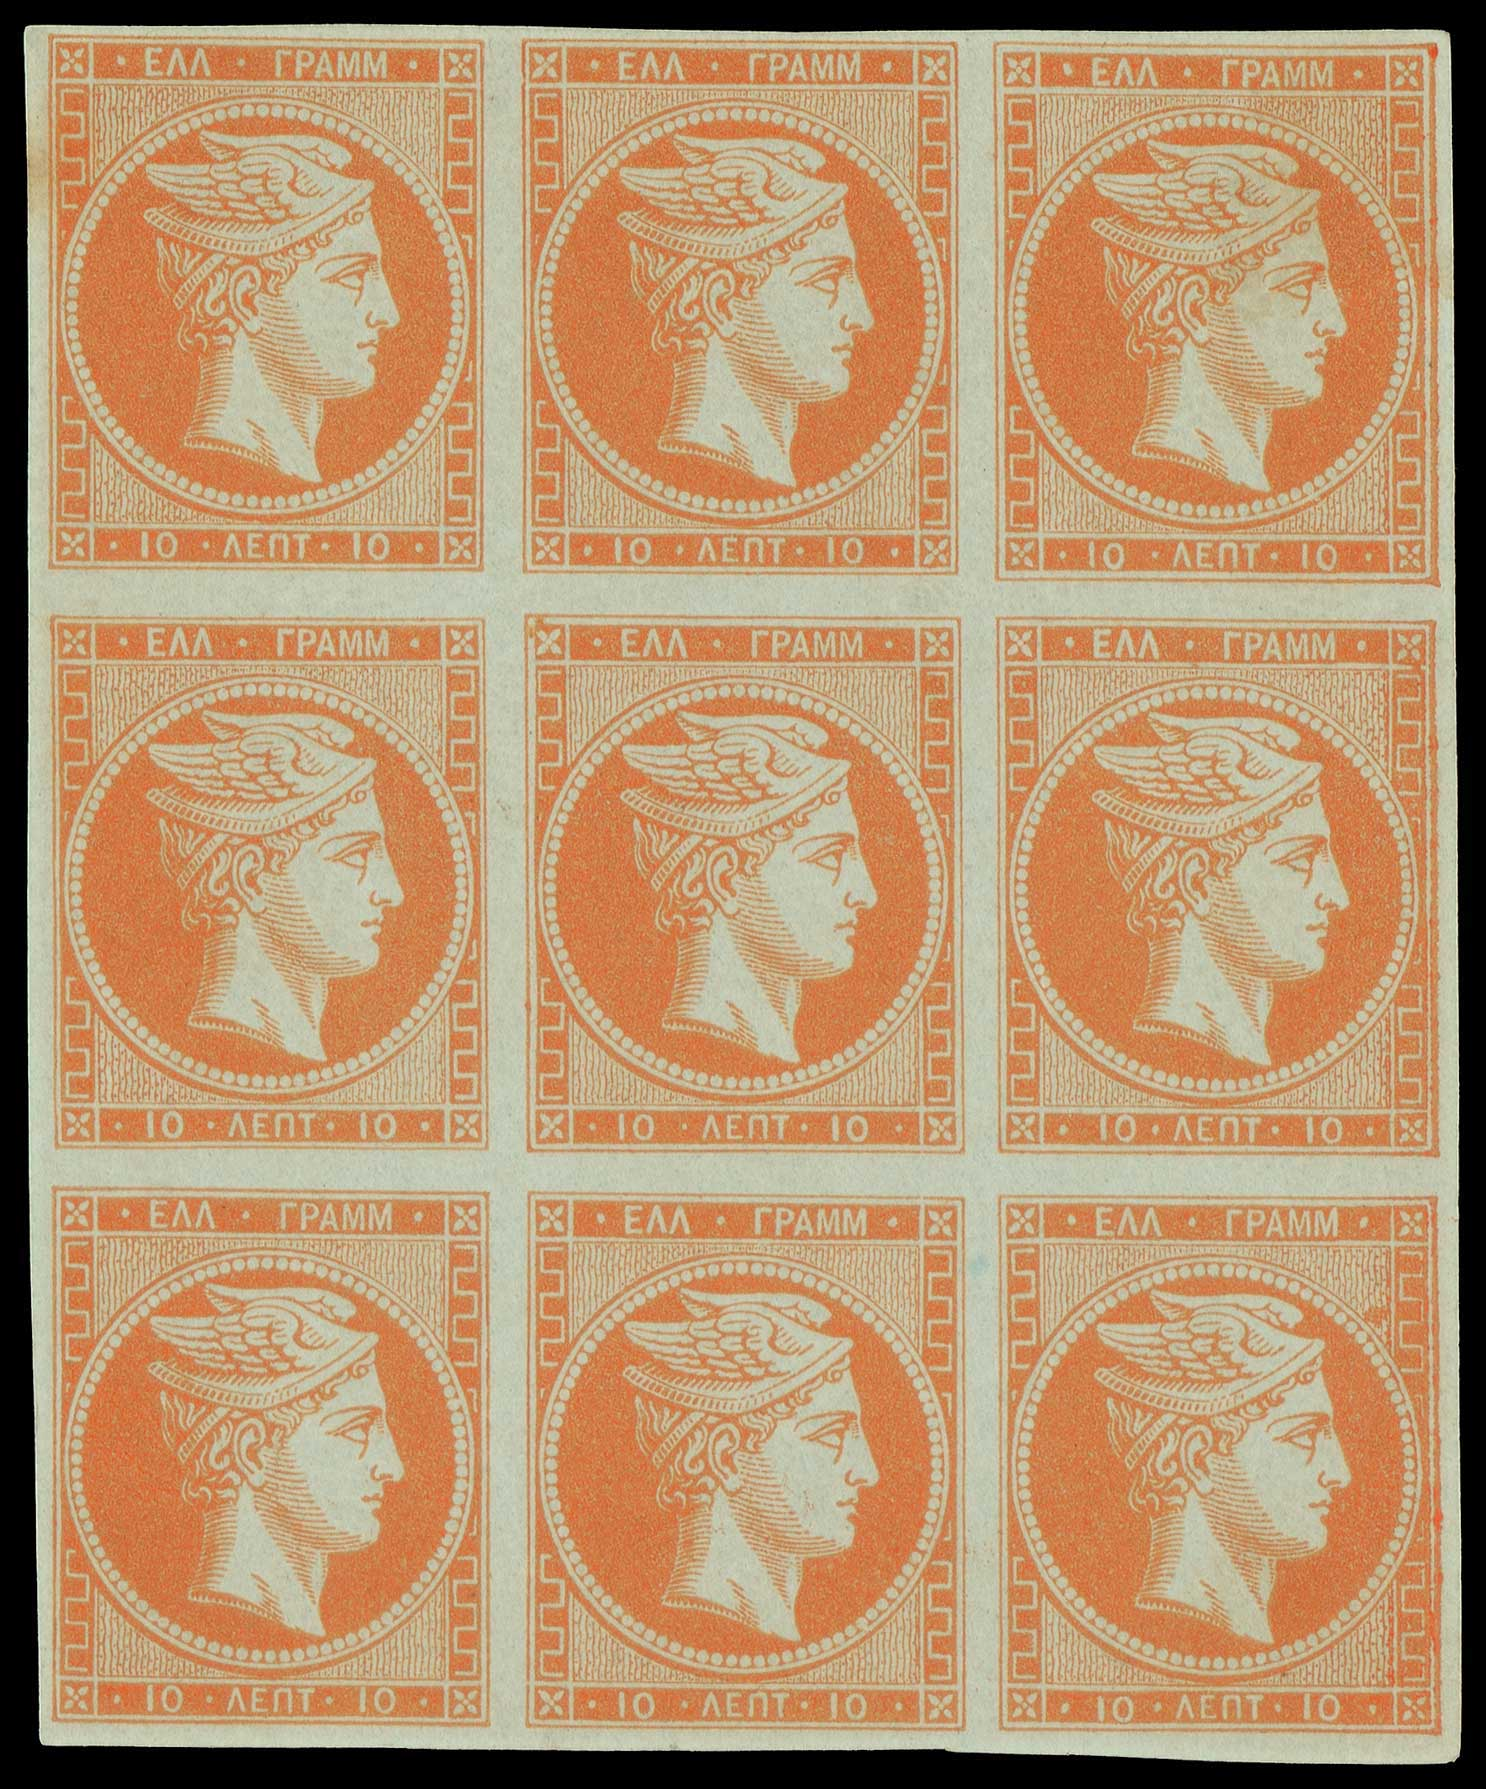 Lot 102 - -  LARGE HERMES HEAD 1862/67 consecutive athens printings -  A. Karamitsos Public & Live Internet Auction 666 Large Hermes Heads Exceptional Stamps from Great Collections